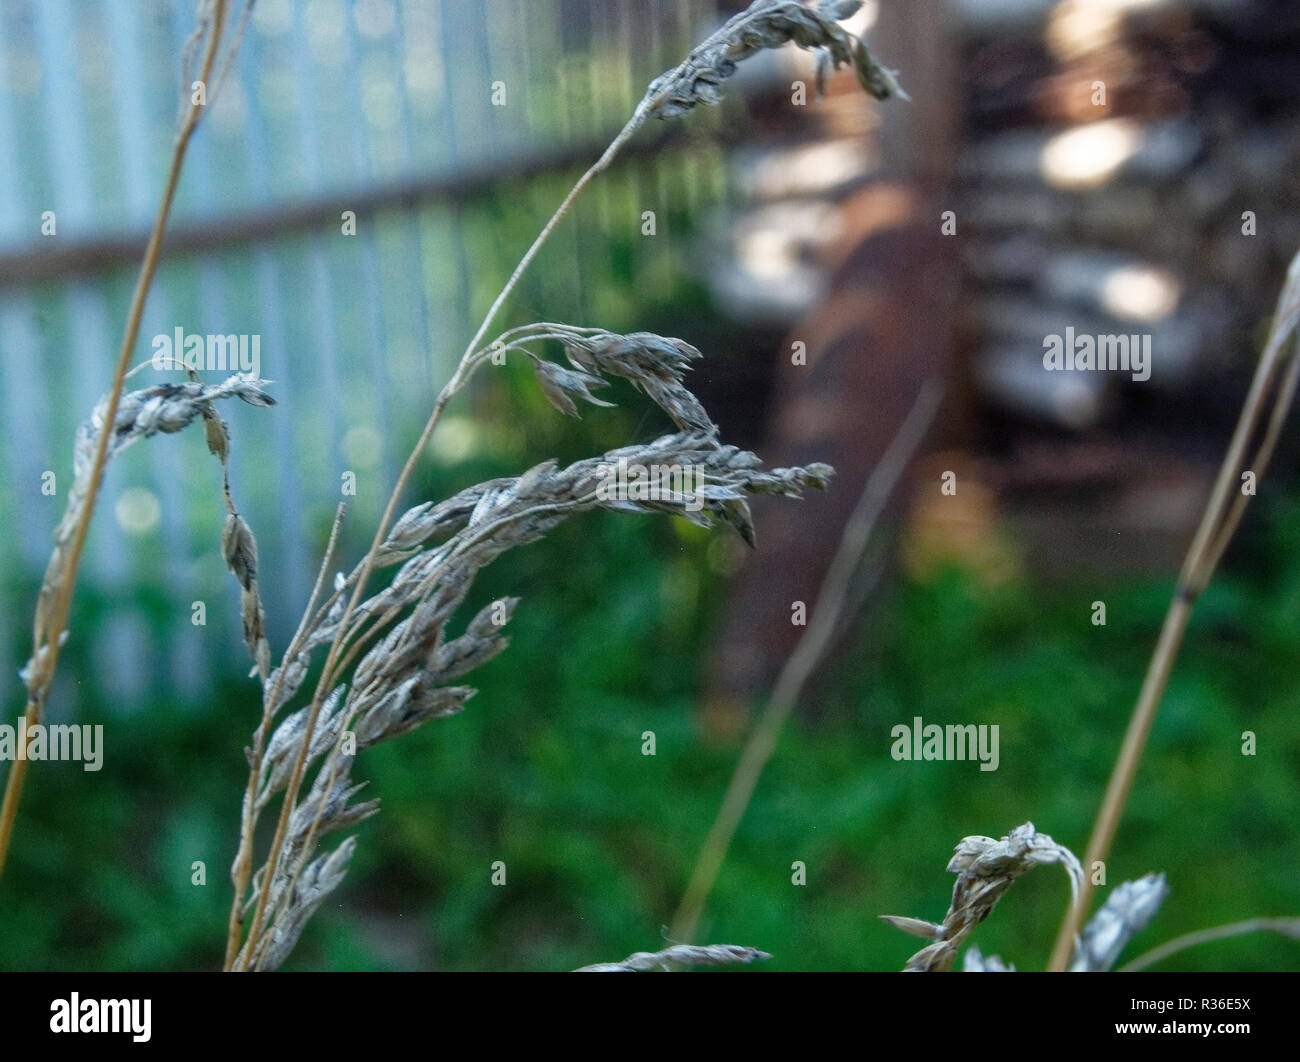 wild grass on a rural area in summer, Russia - Stock Image